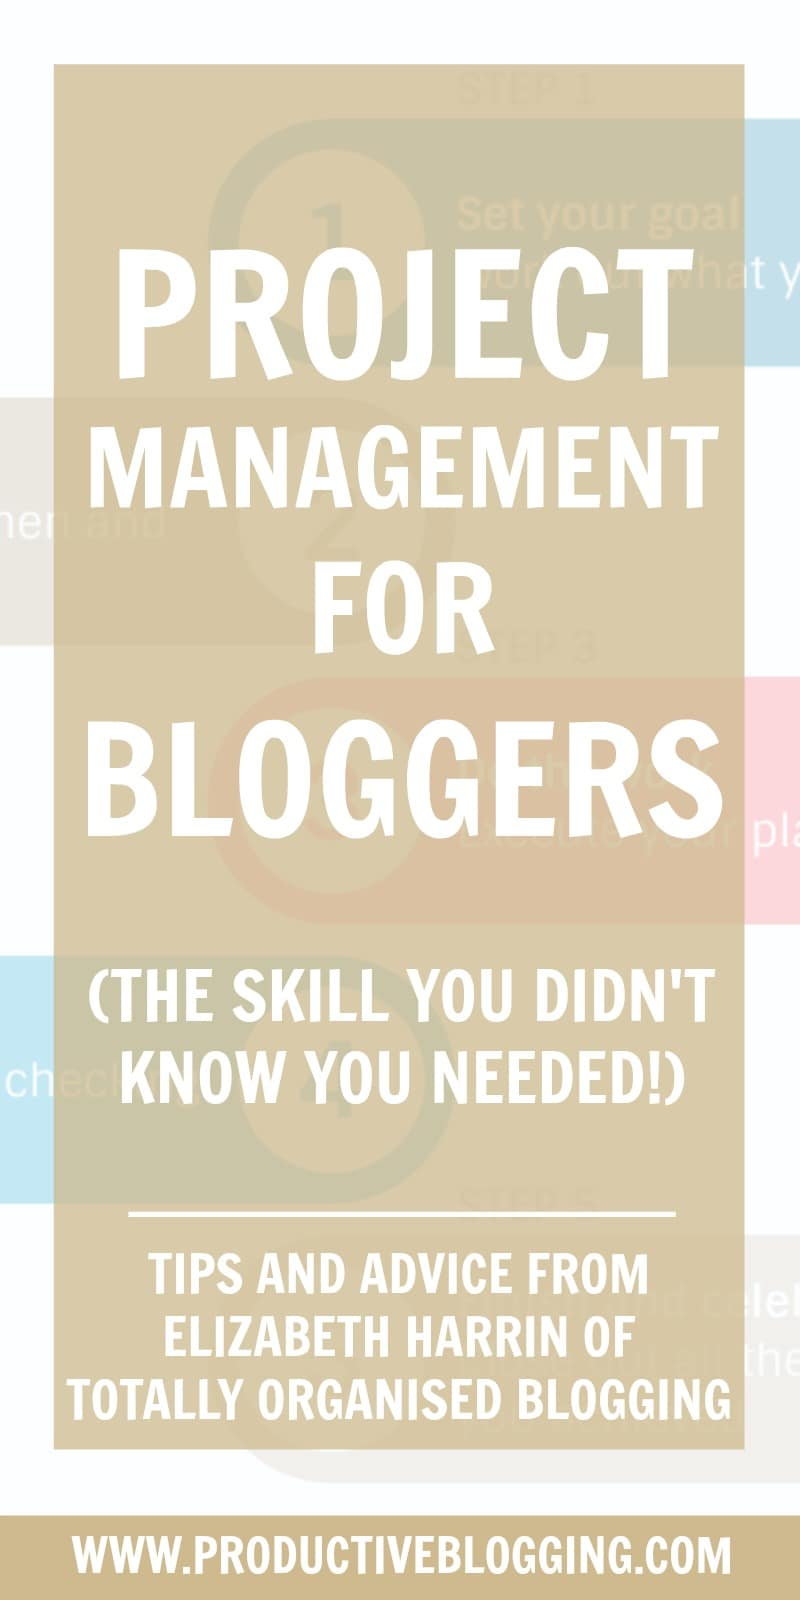 As bloggers we manage projects all the time, even if we might not think of them as projects! Elizabeth Harrin is a professional project manager, as well as an award winning blogger. She shares her tips on project management for bloggers – showing how using project management techniques can make blogging less stressful and leave you feeling more in control! #projectmanagement #projectmanagementforbloggers #elizabethharrin #guestpost #productivitytips #bloggingtips #productiveblogging